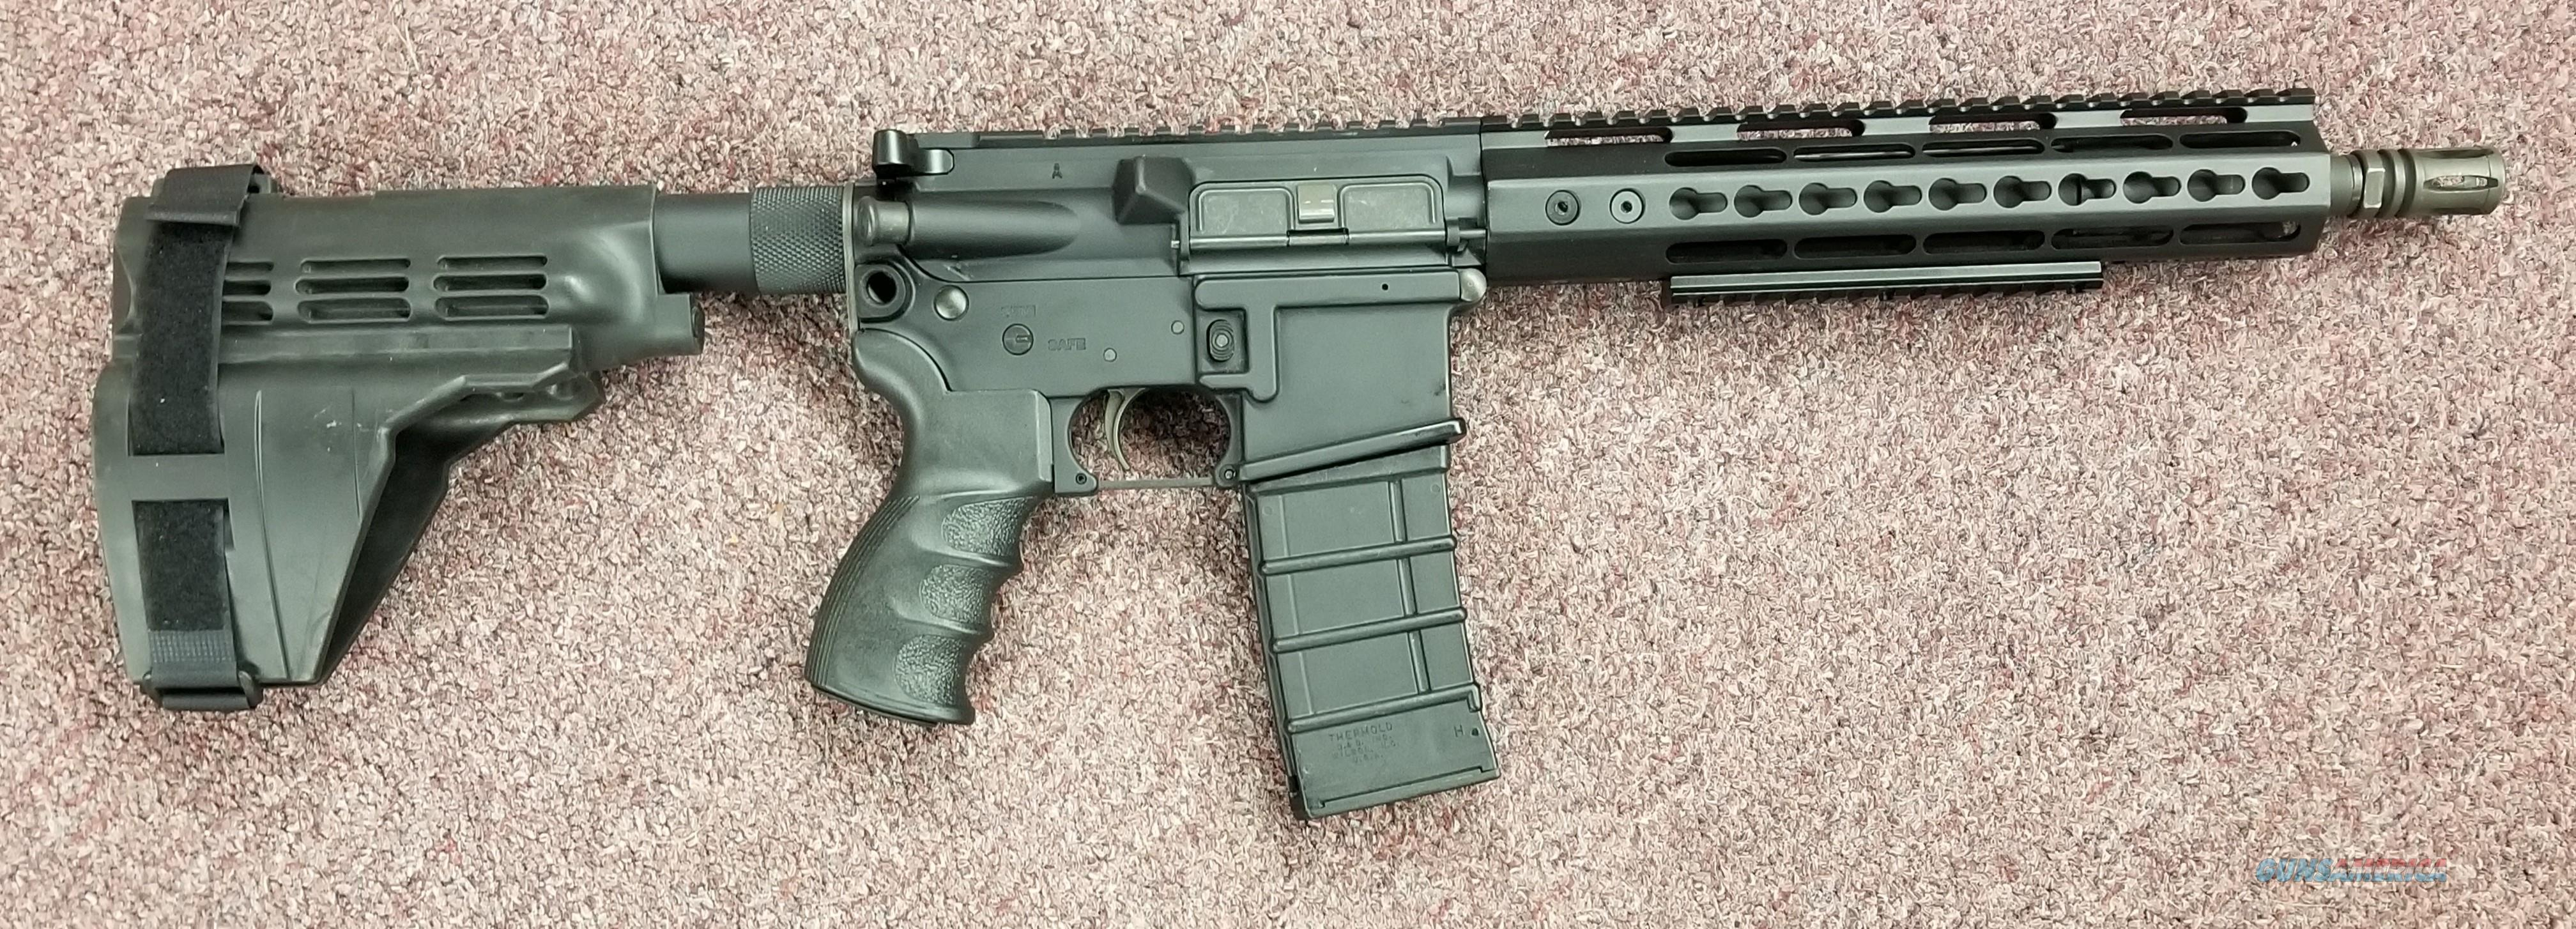 SIG M400  .223 / 5.56  AR15 Pistol With Brace - Free Shipping  Guns > Pistols > Sig - Sauer/Sigarms Pistols > Other